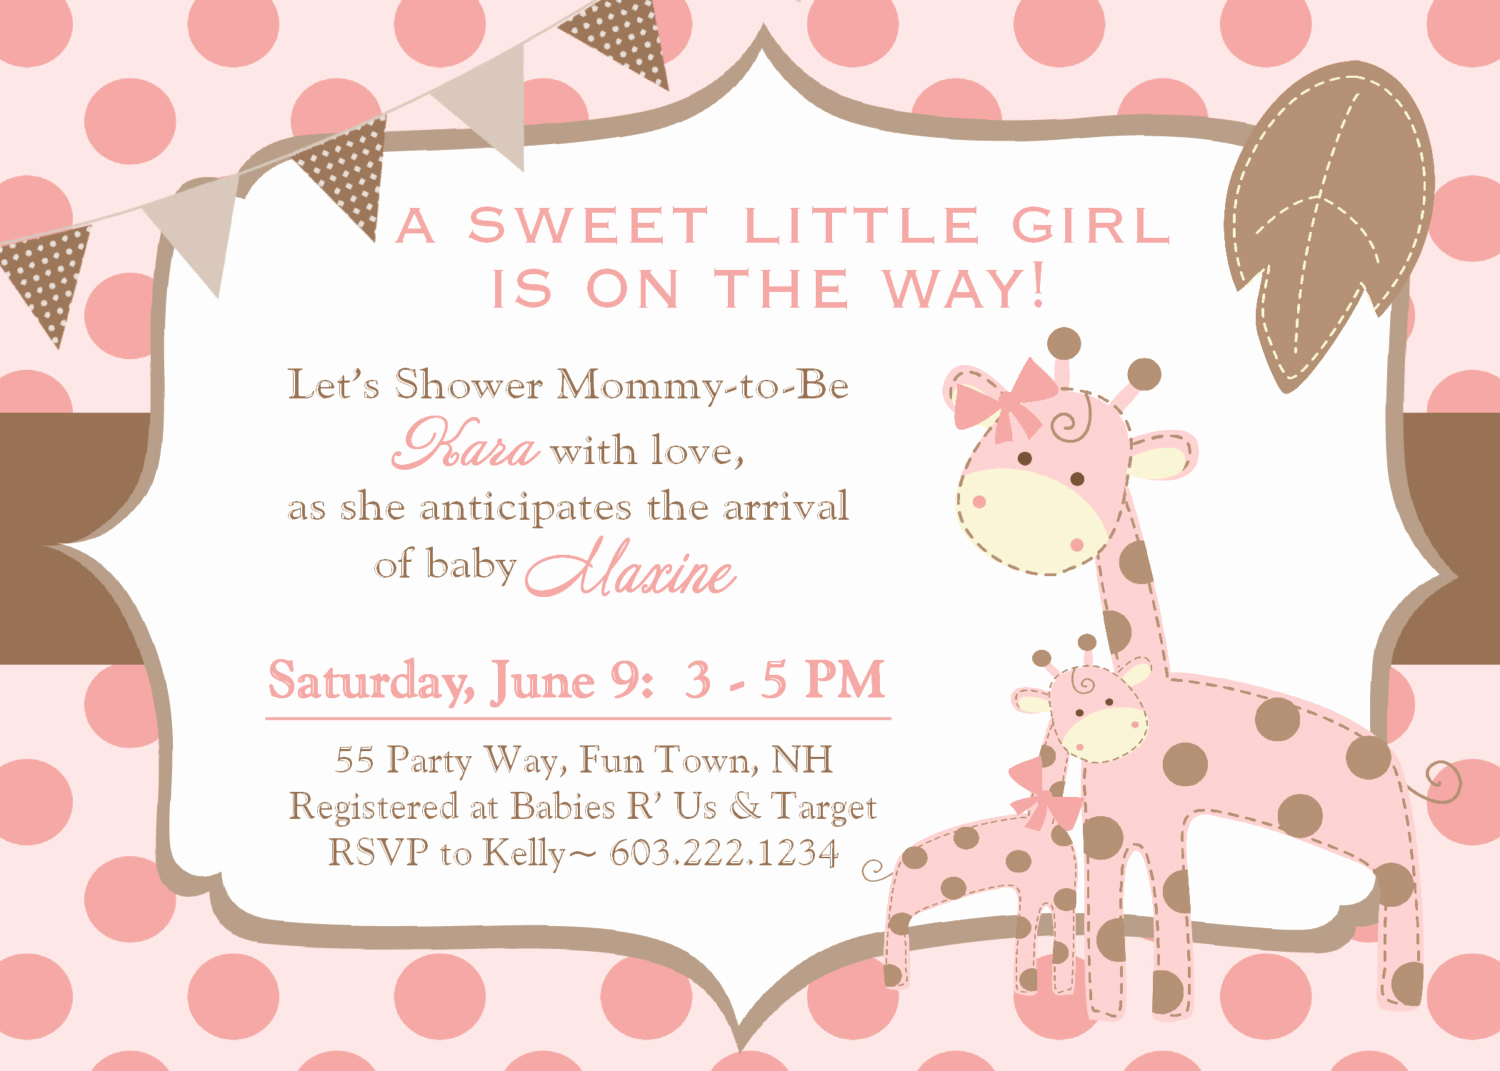 Baby Shower Invitation for Girl Beautiful Giraffe Baby Shower Invitation Girl Invitation Giraffe Baby